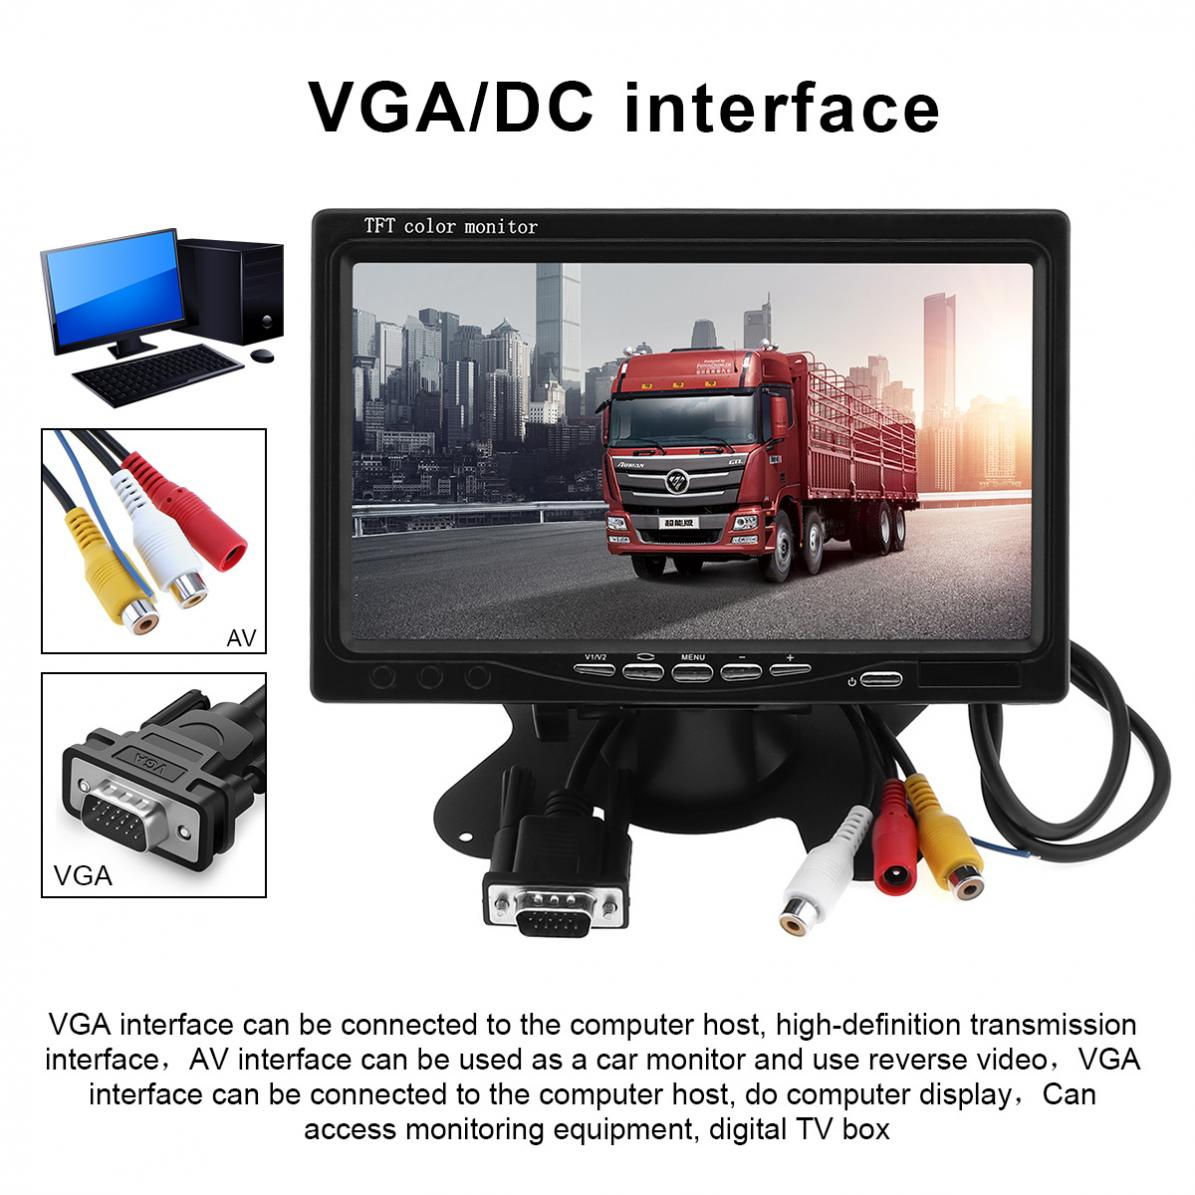 1024x600 7 Inch Multifunction Car Home Monitor Bright Color VGA Interface TFT LCD AV Auto Video Player1024x600 7 Inch Multifunction Car Home Monitor Bright Color VGA Interface TFT LCD AV Auto Video Player